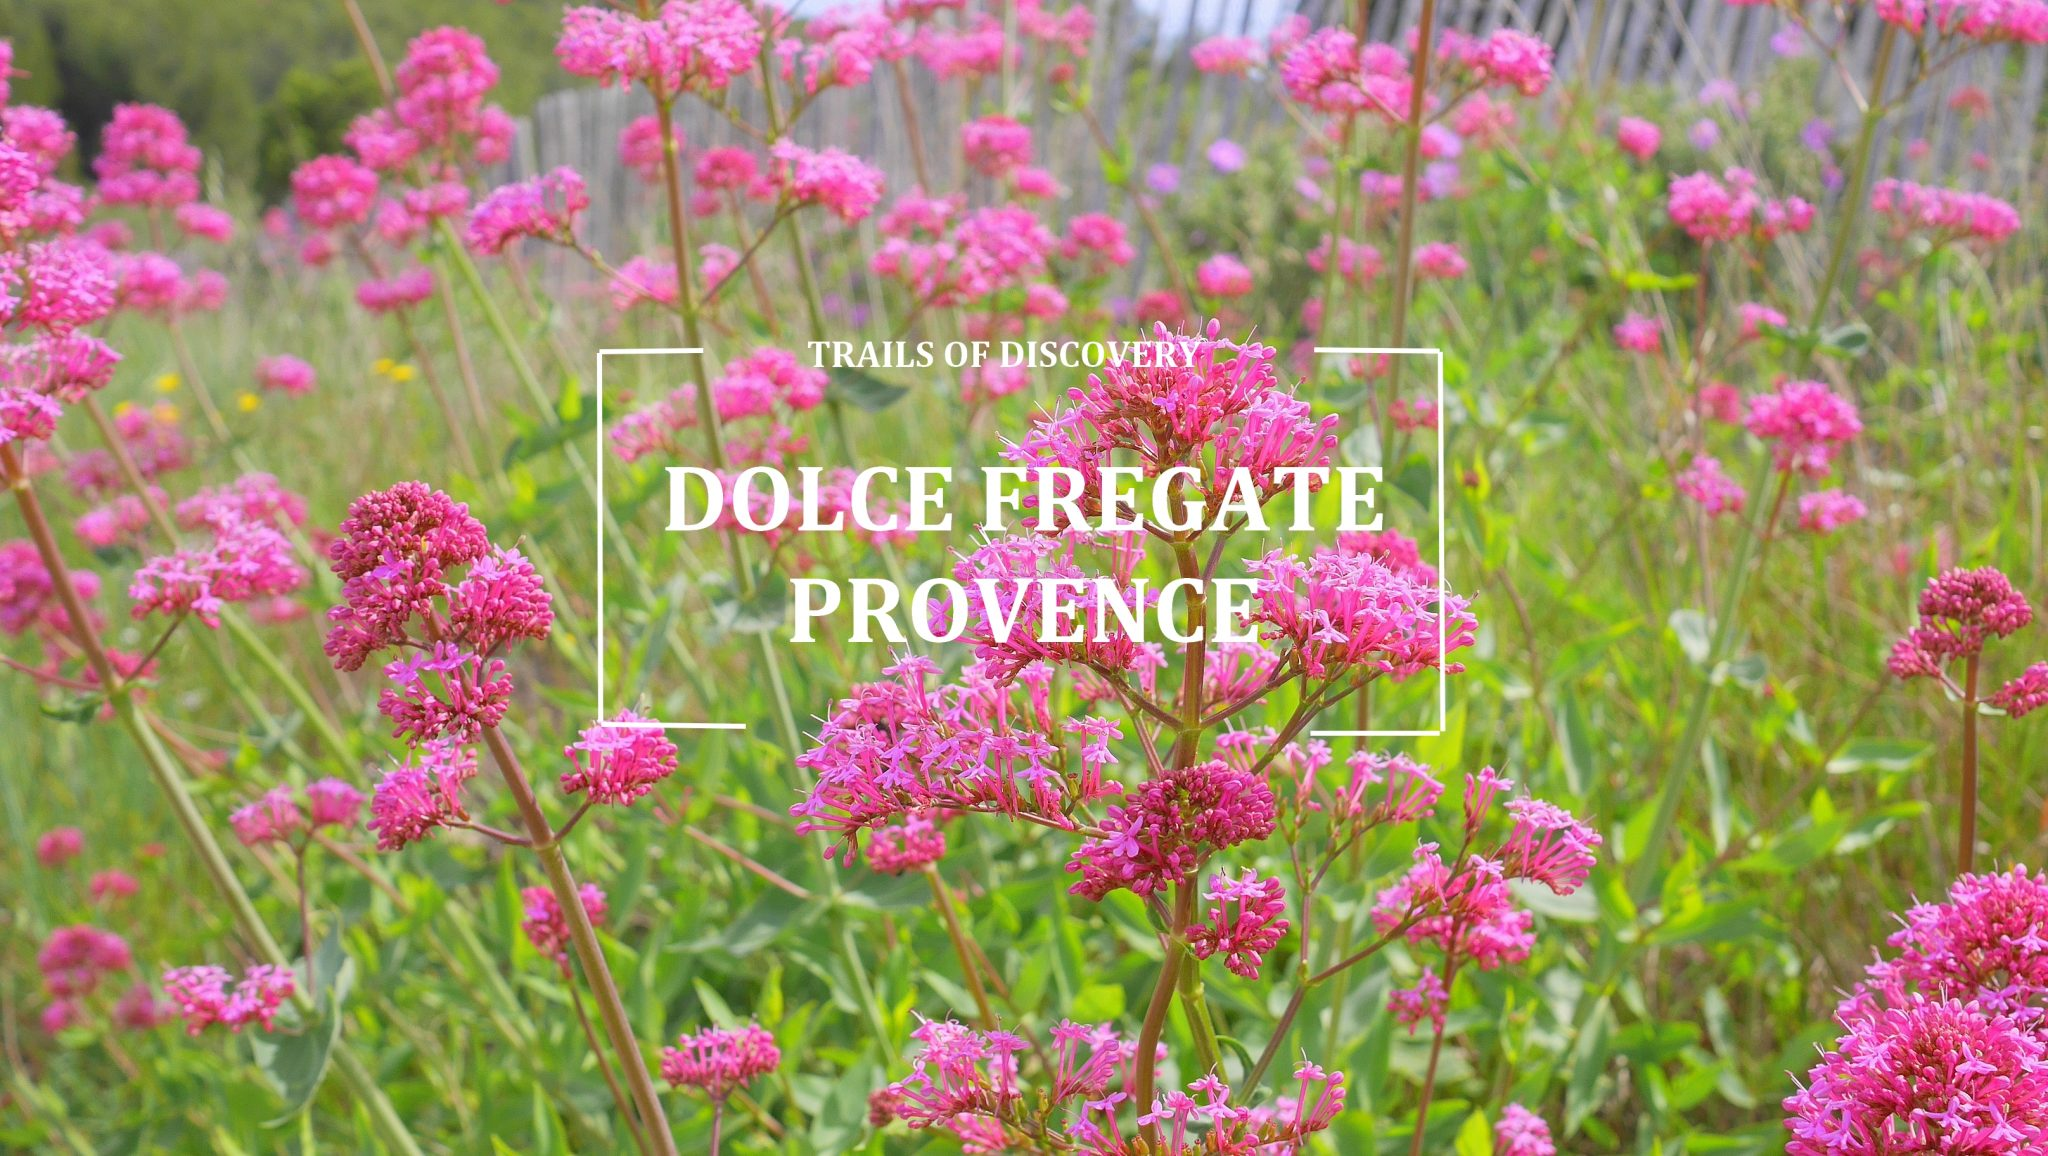 Trails-discovery-dolce-fregate-provence